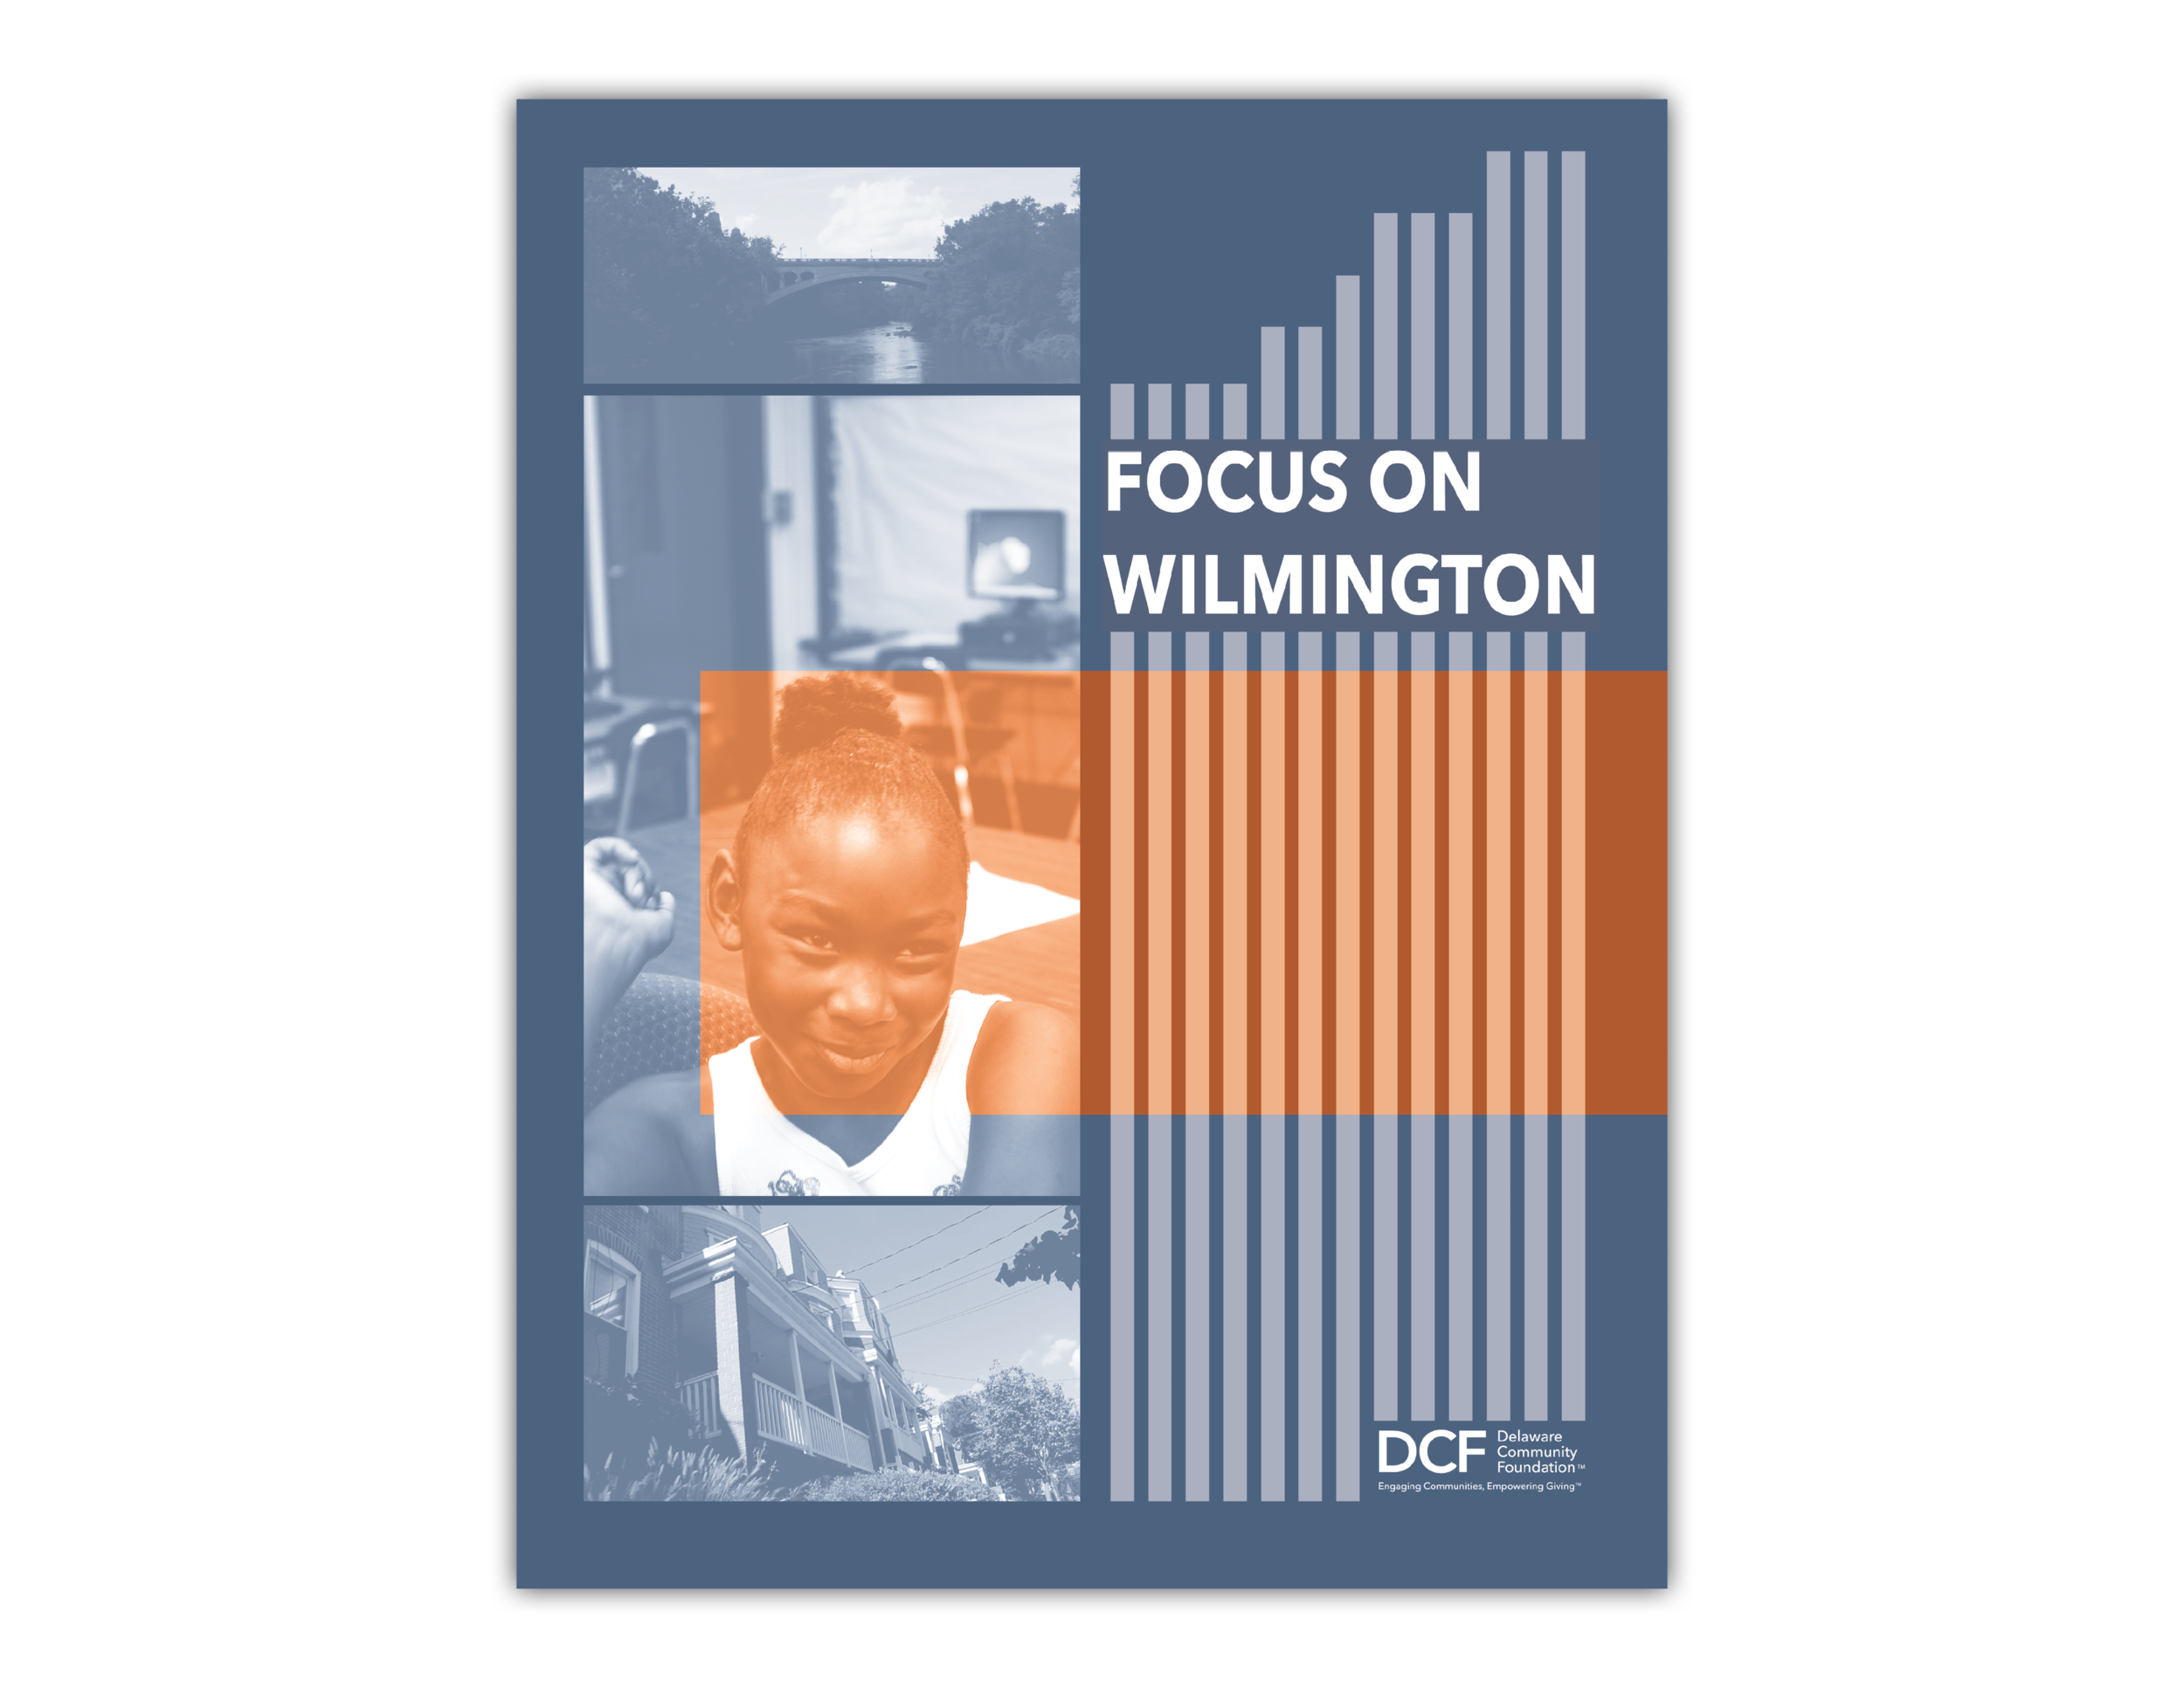 Social Contract Collateral_Focus on Wilmington.png